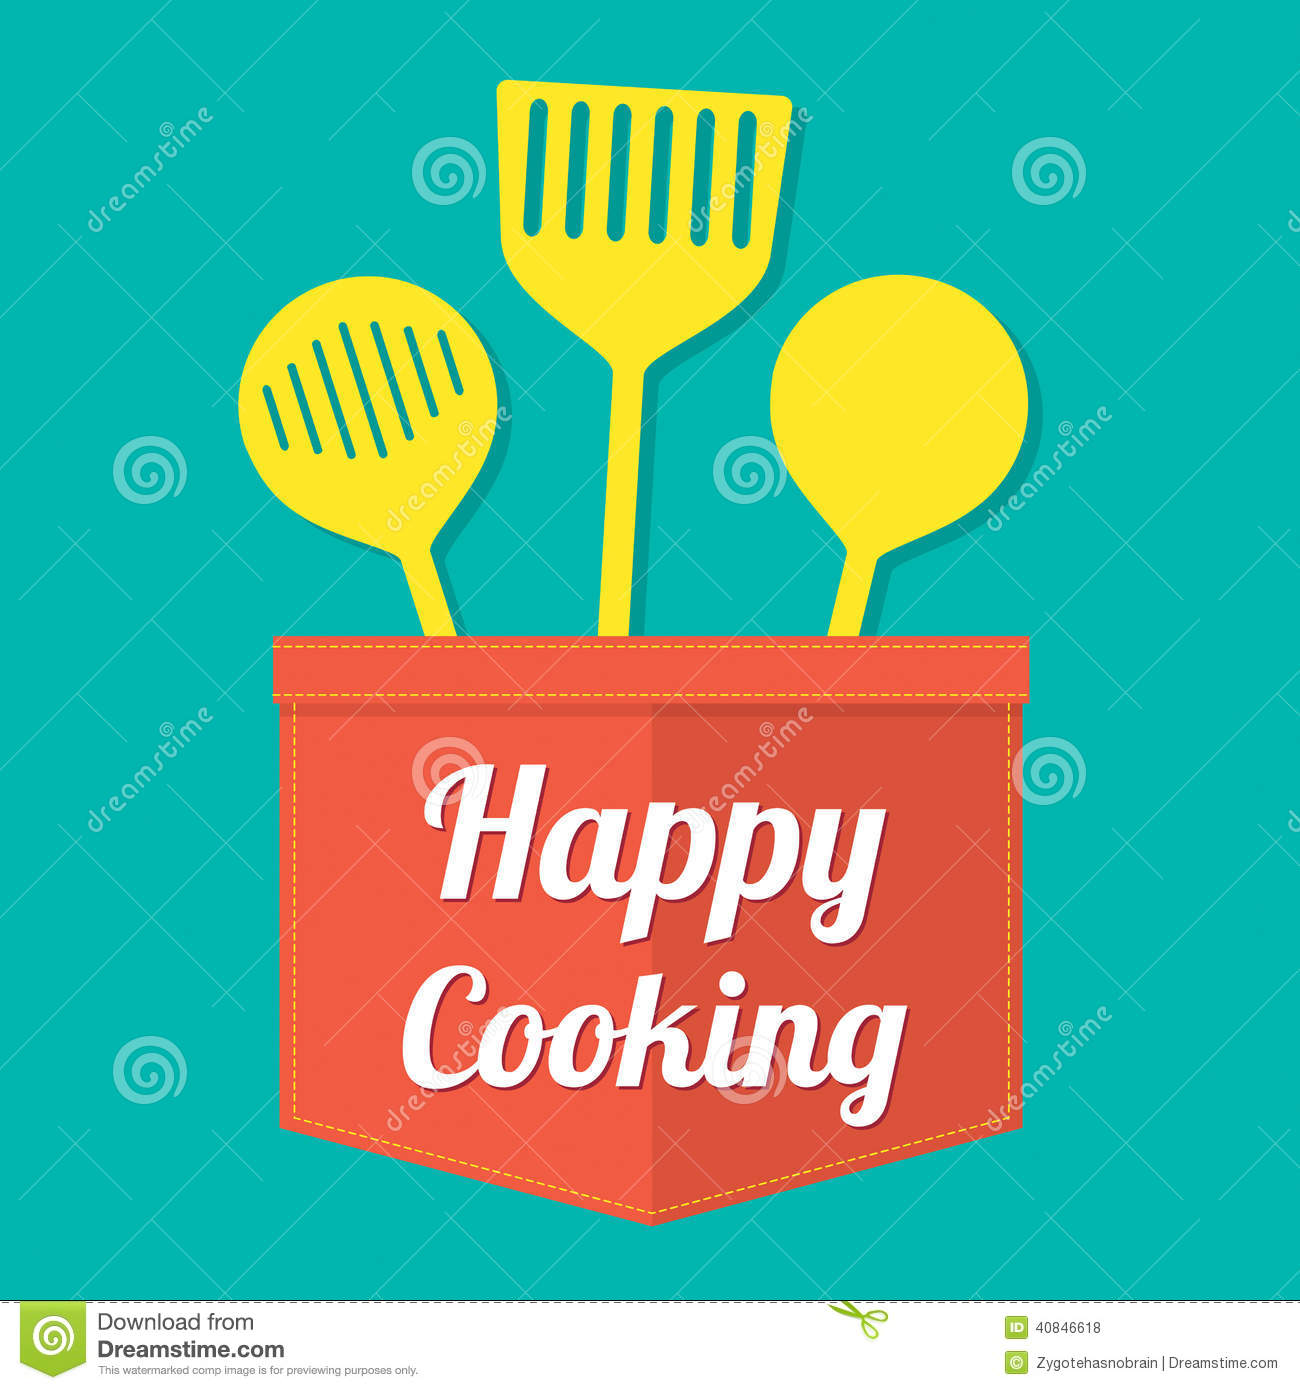 Happy Cooking Stock Vector Image Of Design Icon Concept